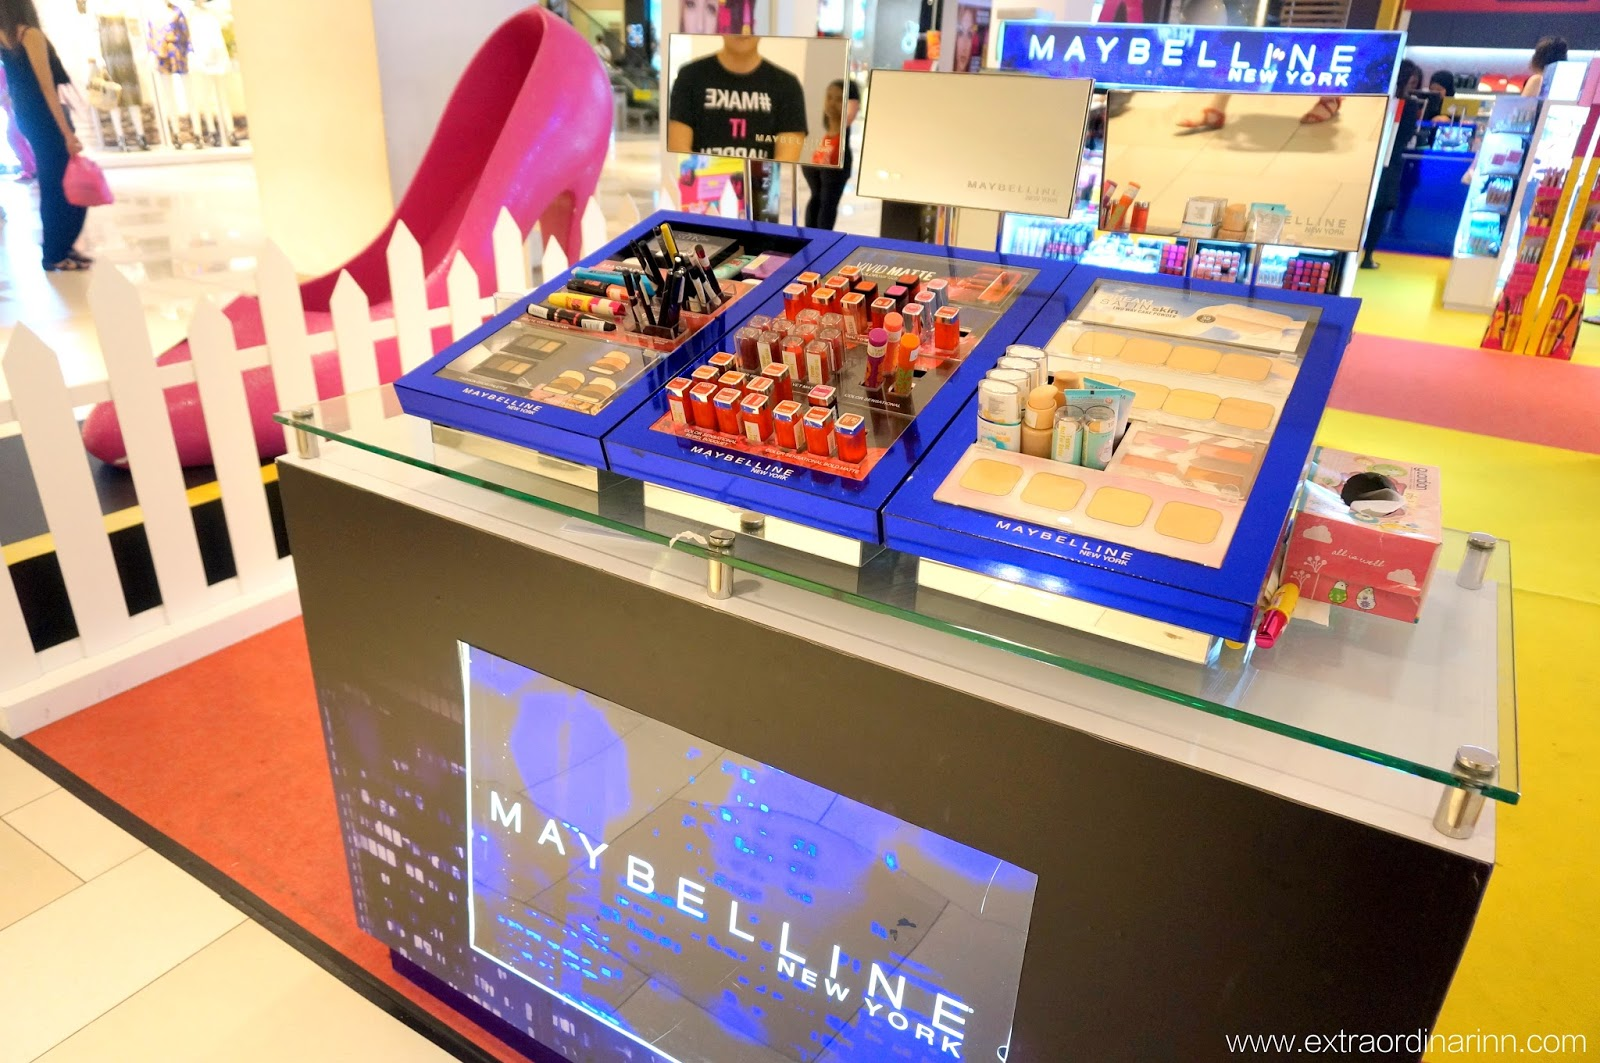 283e05ac5aa Before stepping into the event space, you'll be able to try out Maybelline's  latest products at this sampling counter and find the products you love  before ...